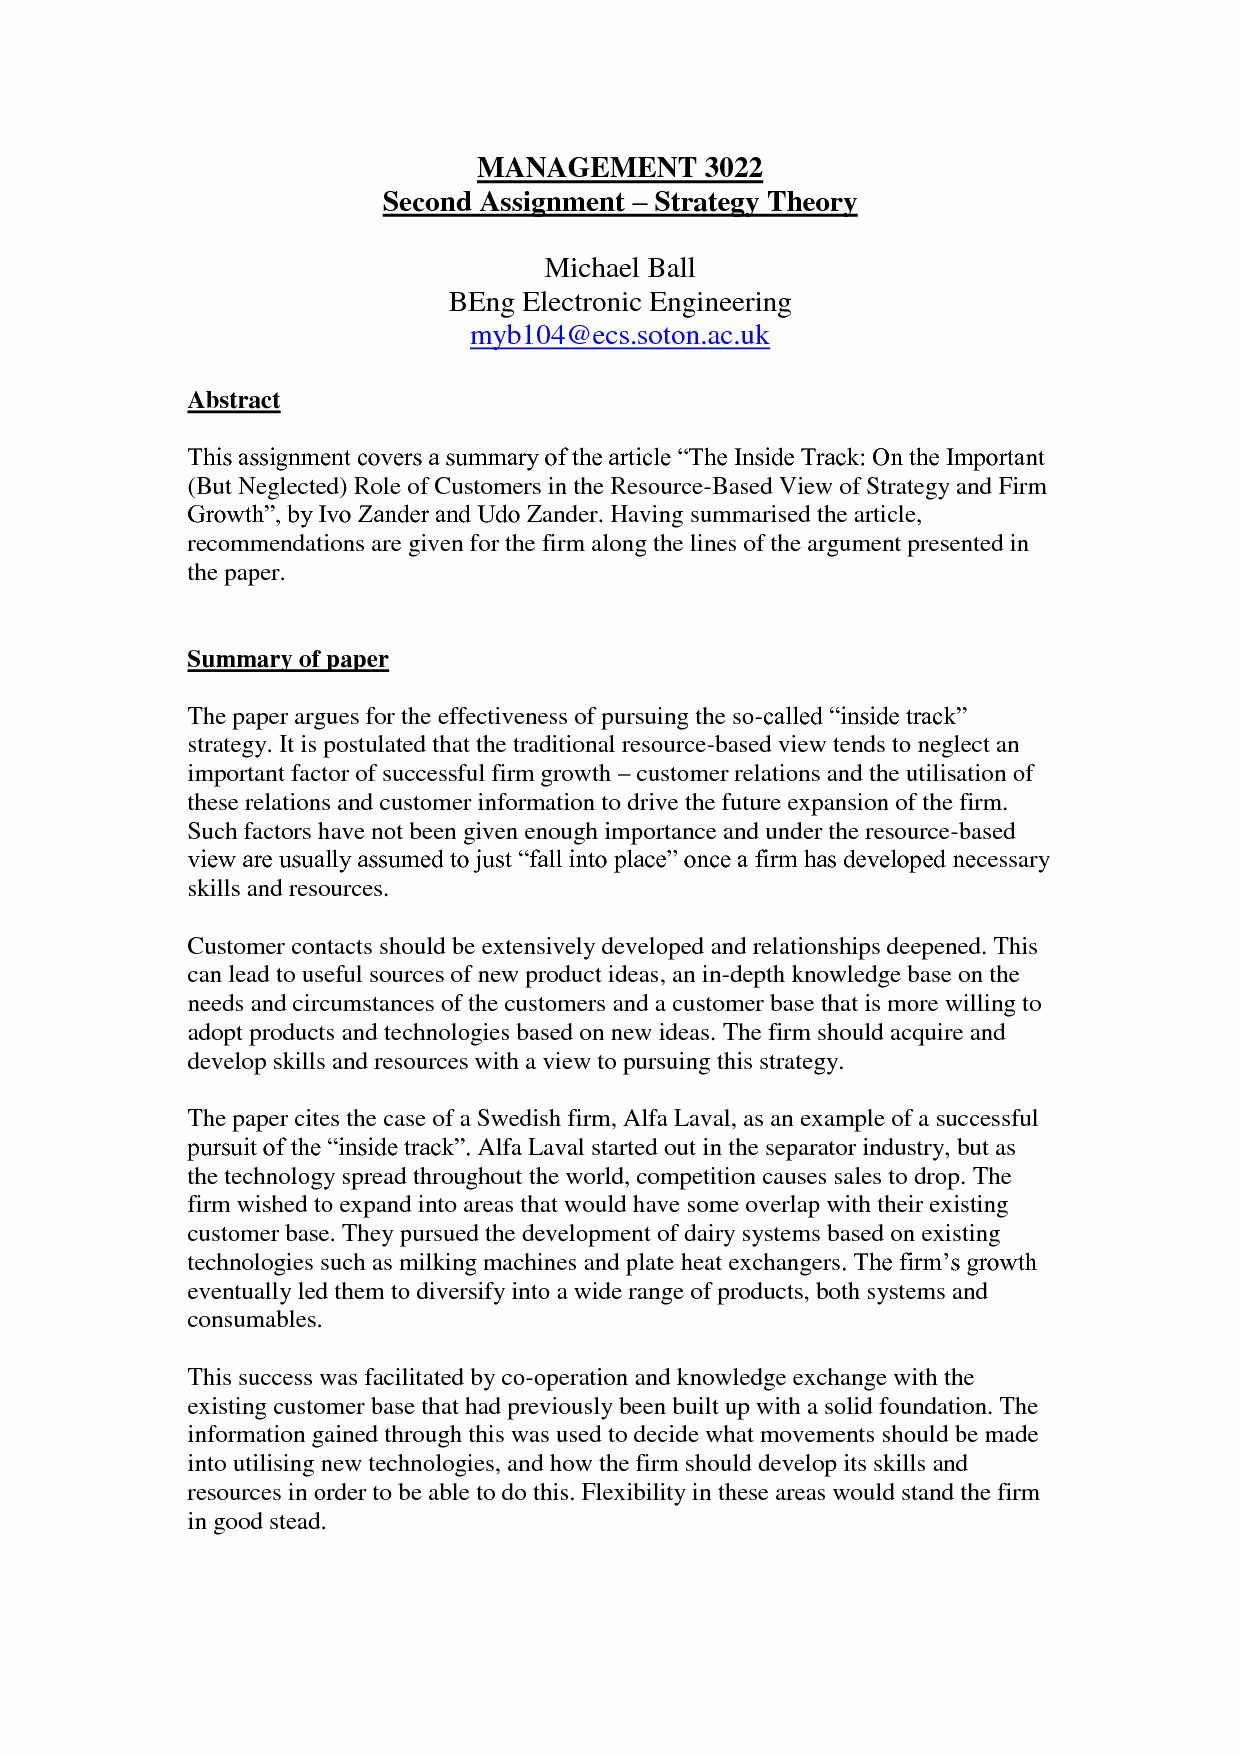 Ut Austin Letter Of Recommendation Best Of 44 Example A Summary Essay Writing Summaries Essay Examples Letter Of Recommendation Summary Writing